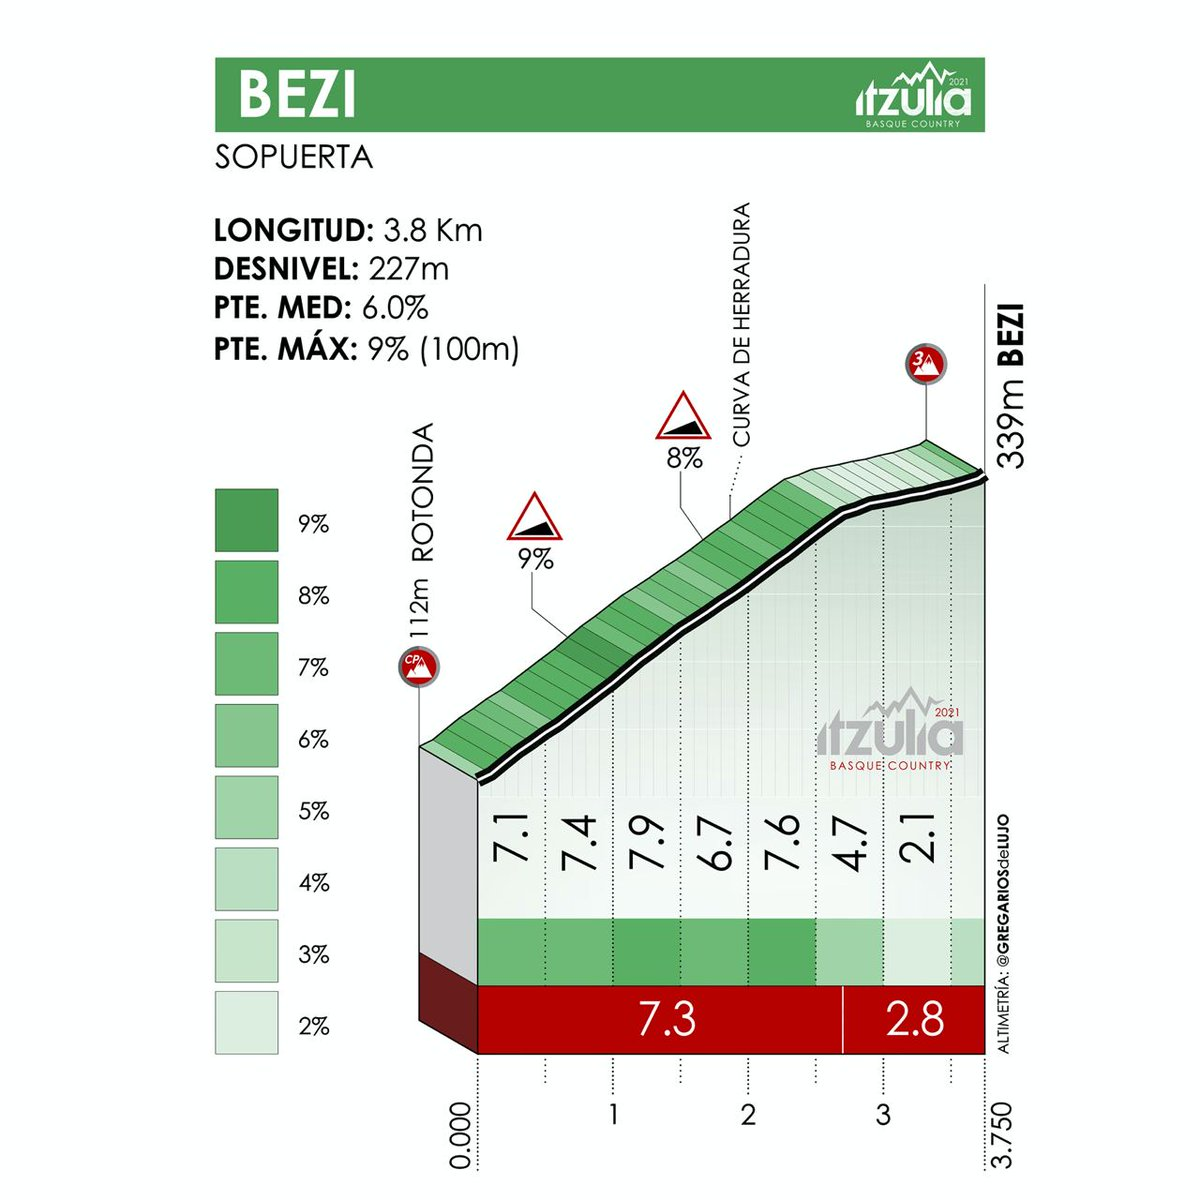 The Bezi climb of stage 2